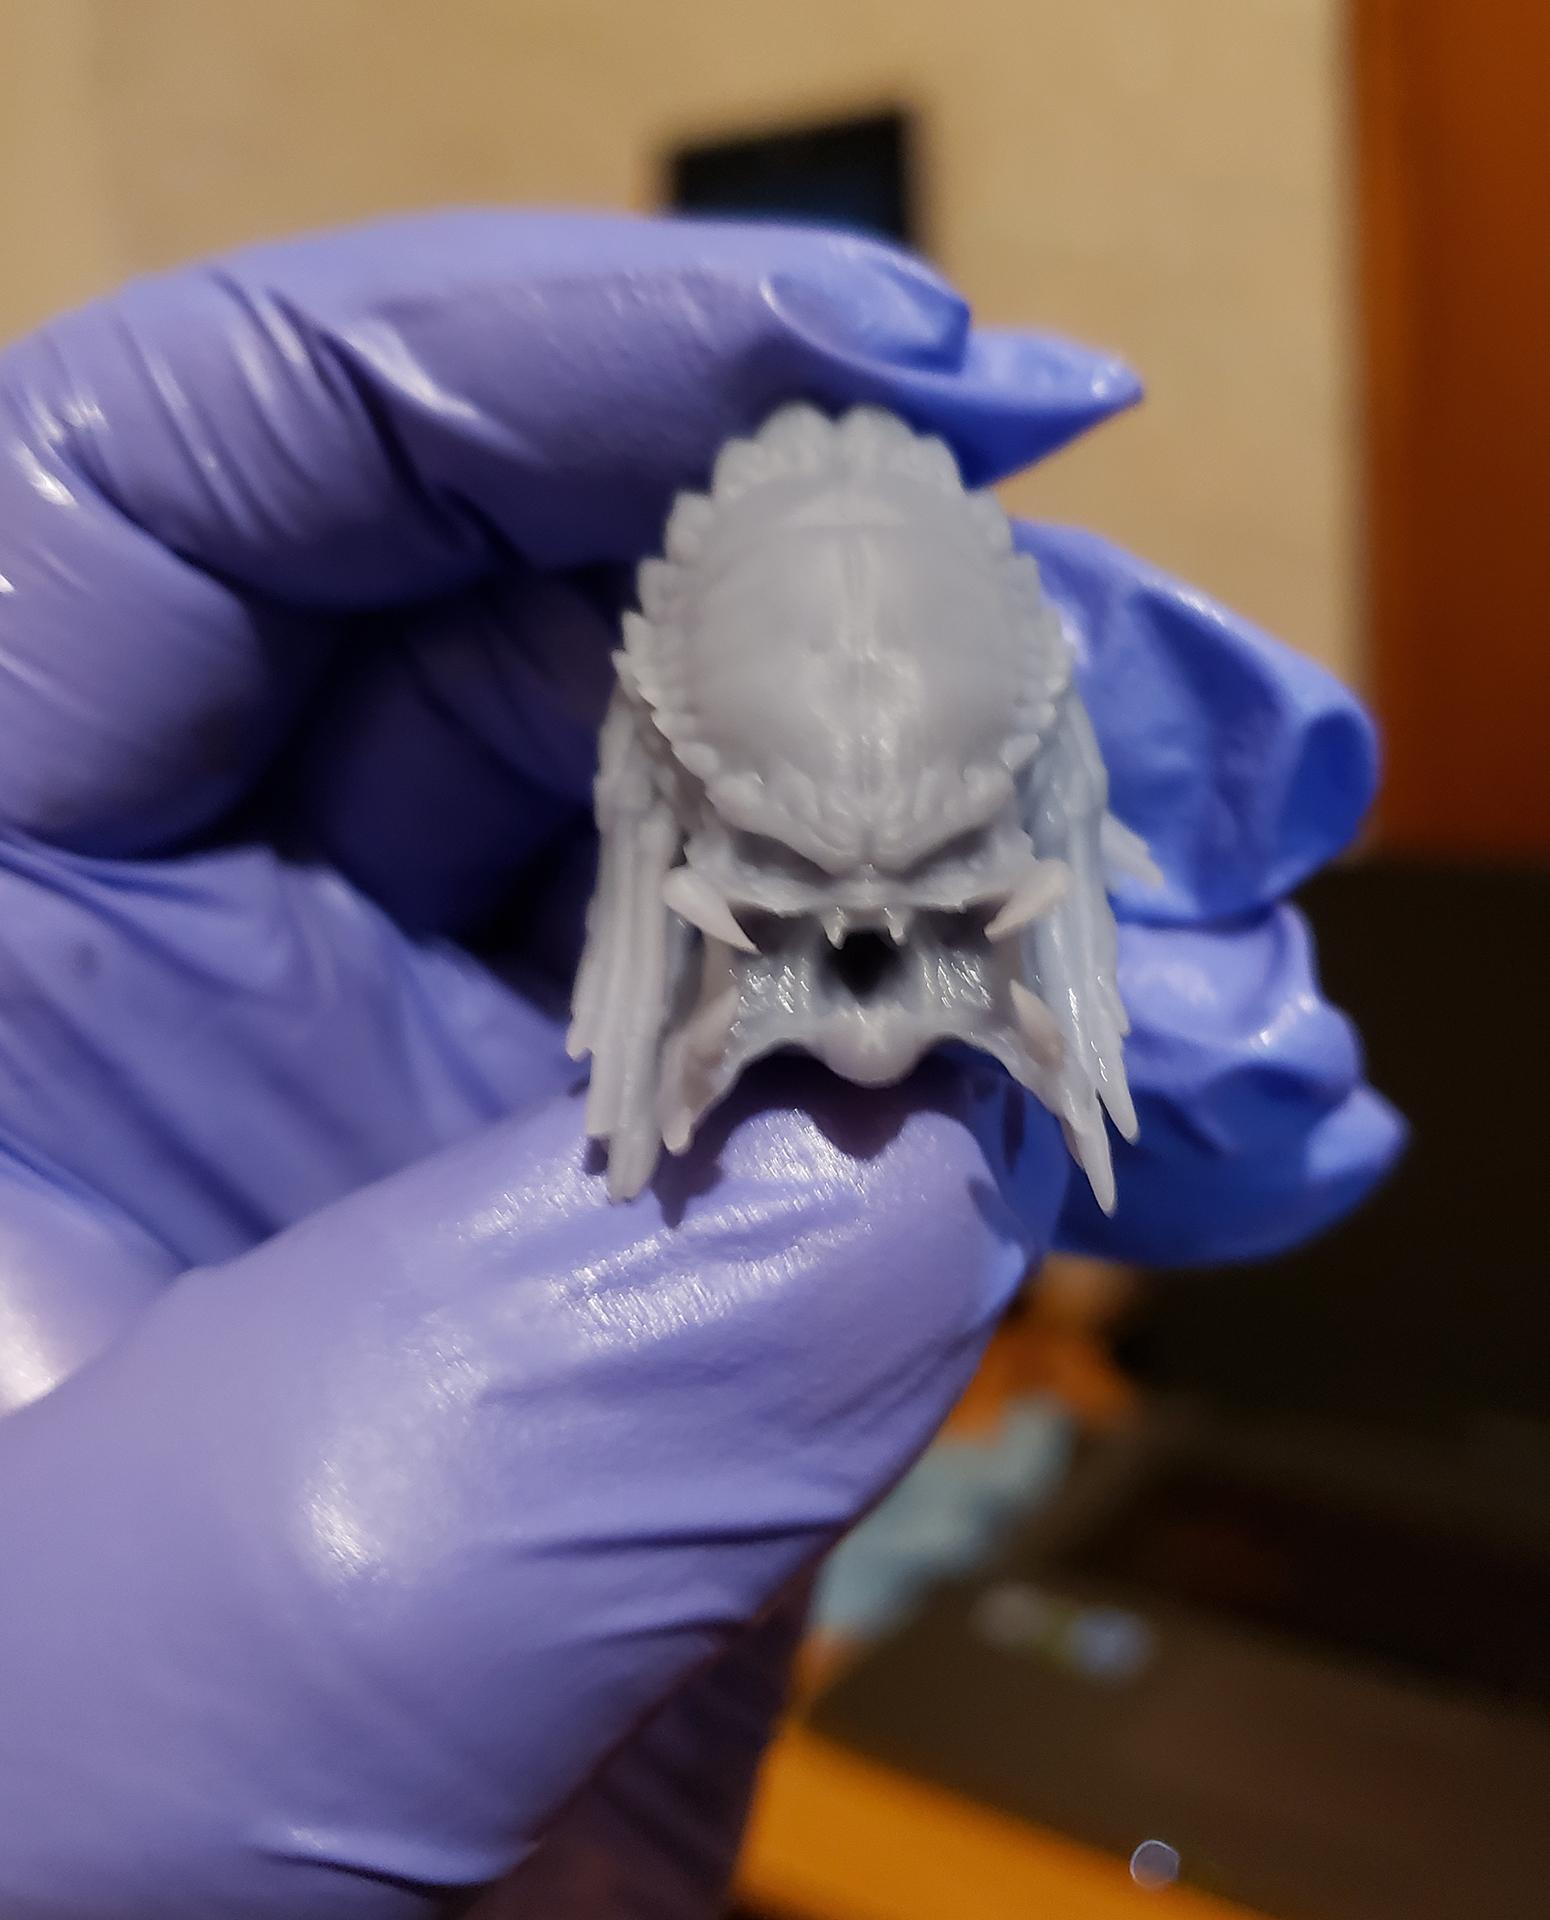 3d Print, 3d Printing, Airbrush, Anycubic Photon, Dlp, Gambody, Monster, Movie, Photon, Predator, Resin, Sla, The Predator, Water Effect, Water Effects, Yautja